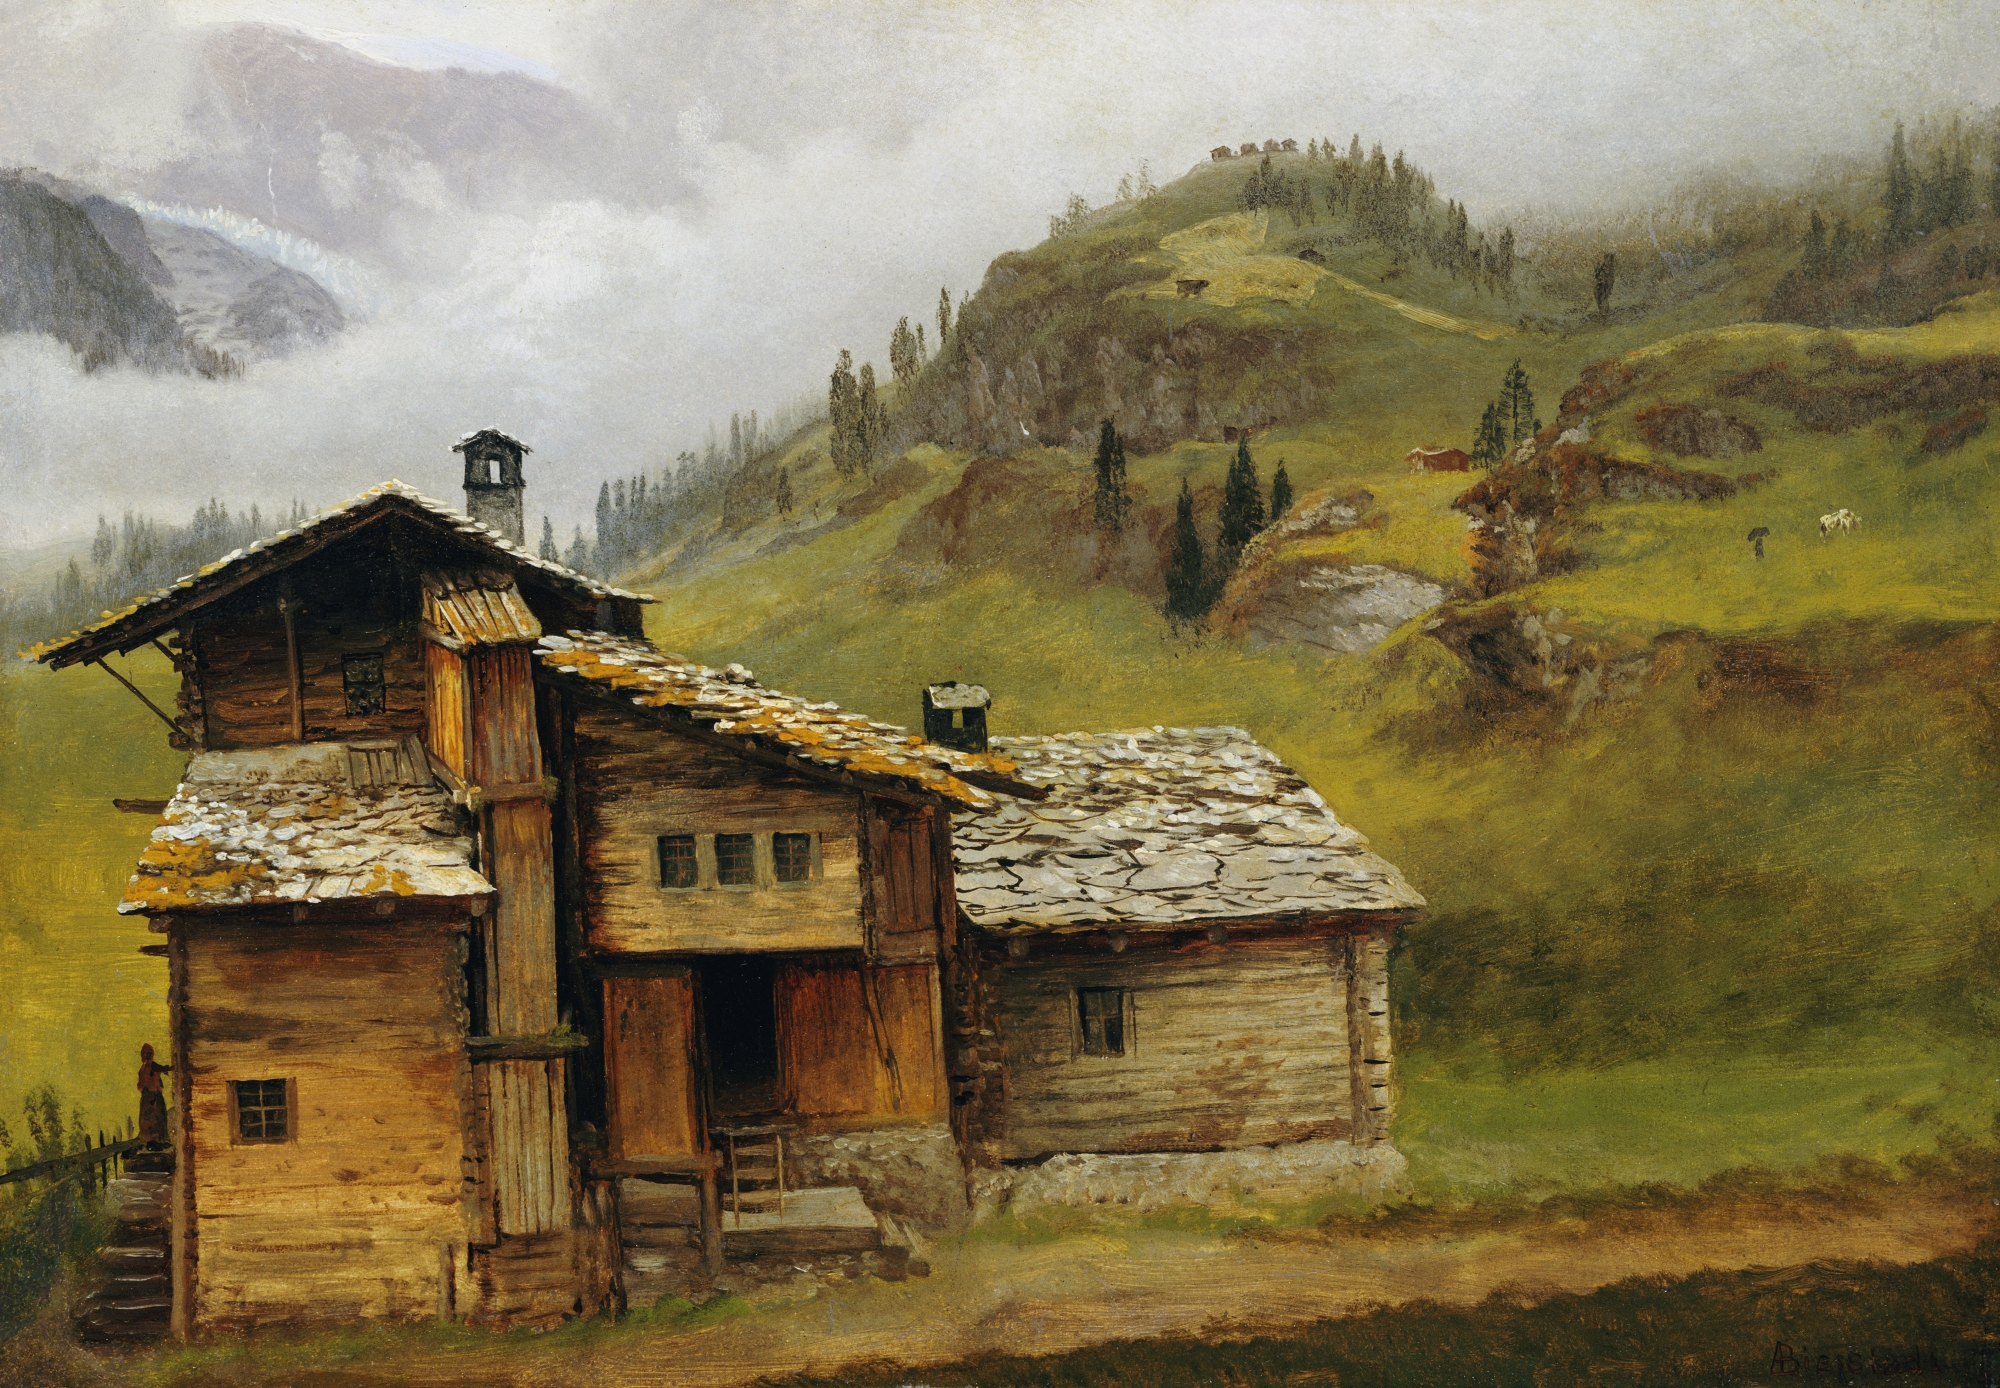 Mountain house pictures full hd pictures - House in the mountains ...